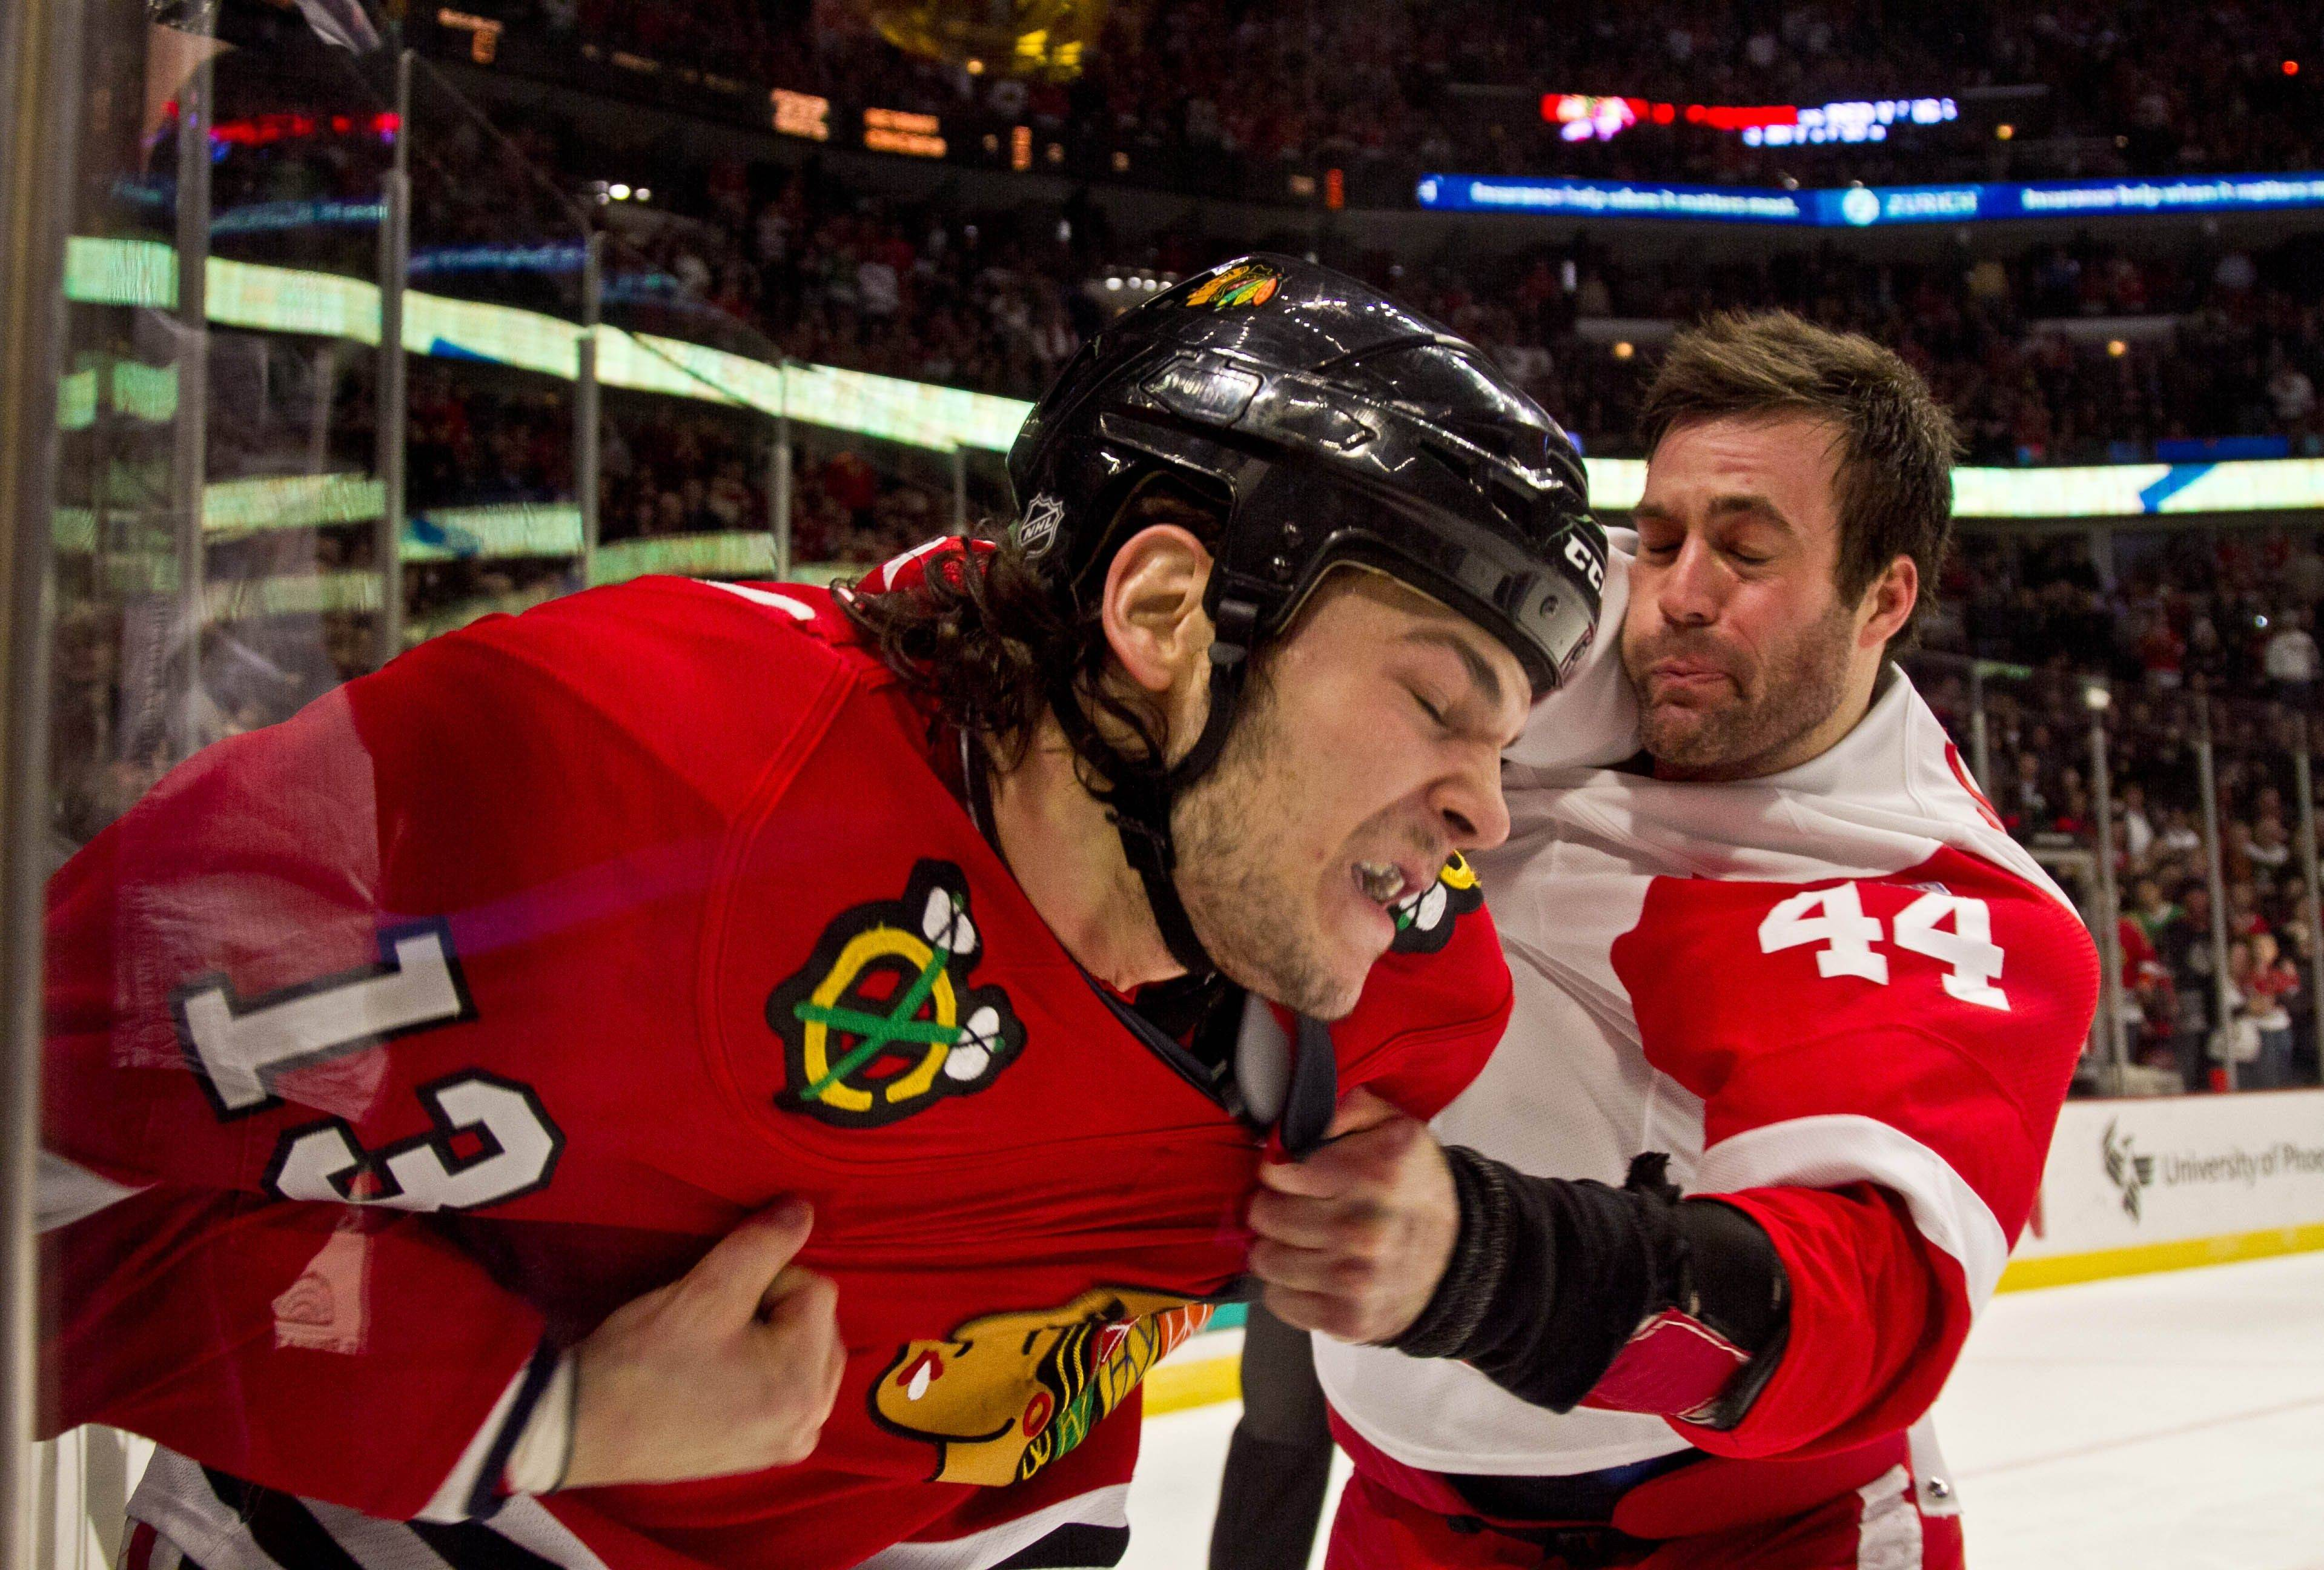 Chicago Blackhawks' Daniel Carcillo and Detroit Red Wings' Todd Bertuzzi fight during the first period of an NHL hockey game in Chicago, Friday, Dec. 30, 2011.